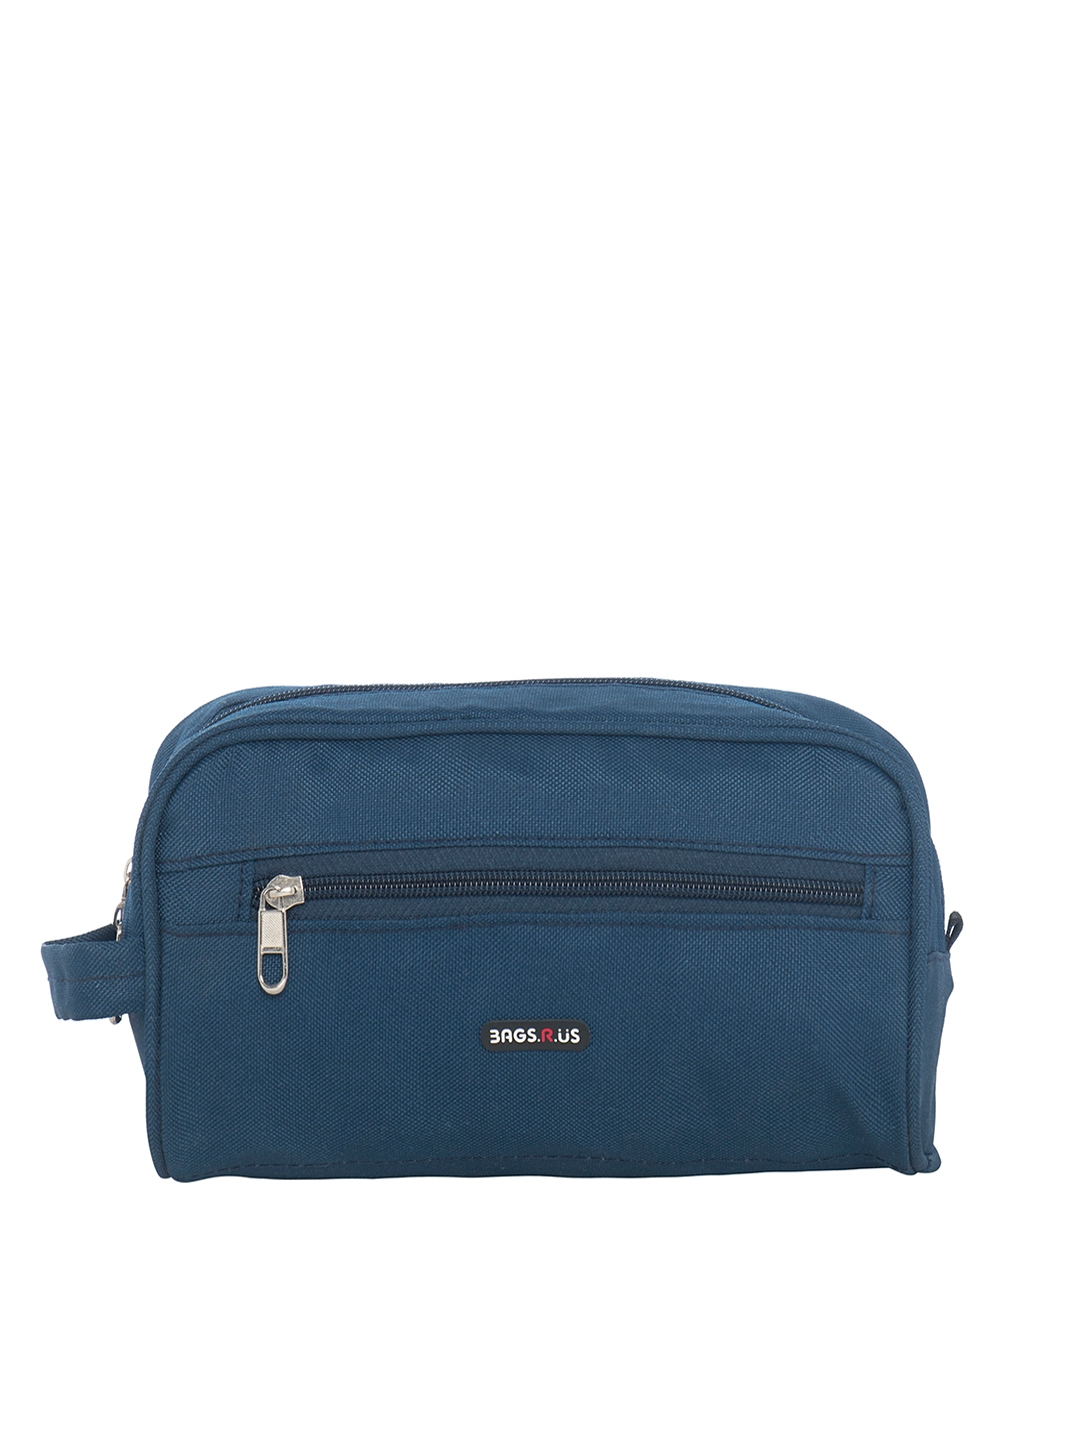 Bags.R.us Unisex Navy Travel Toiletry Kit